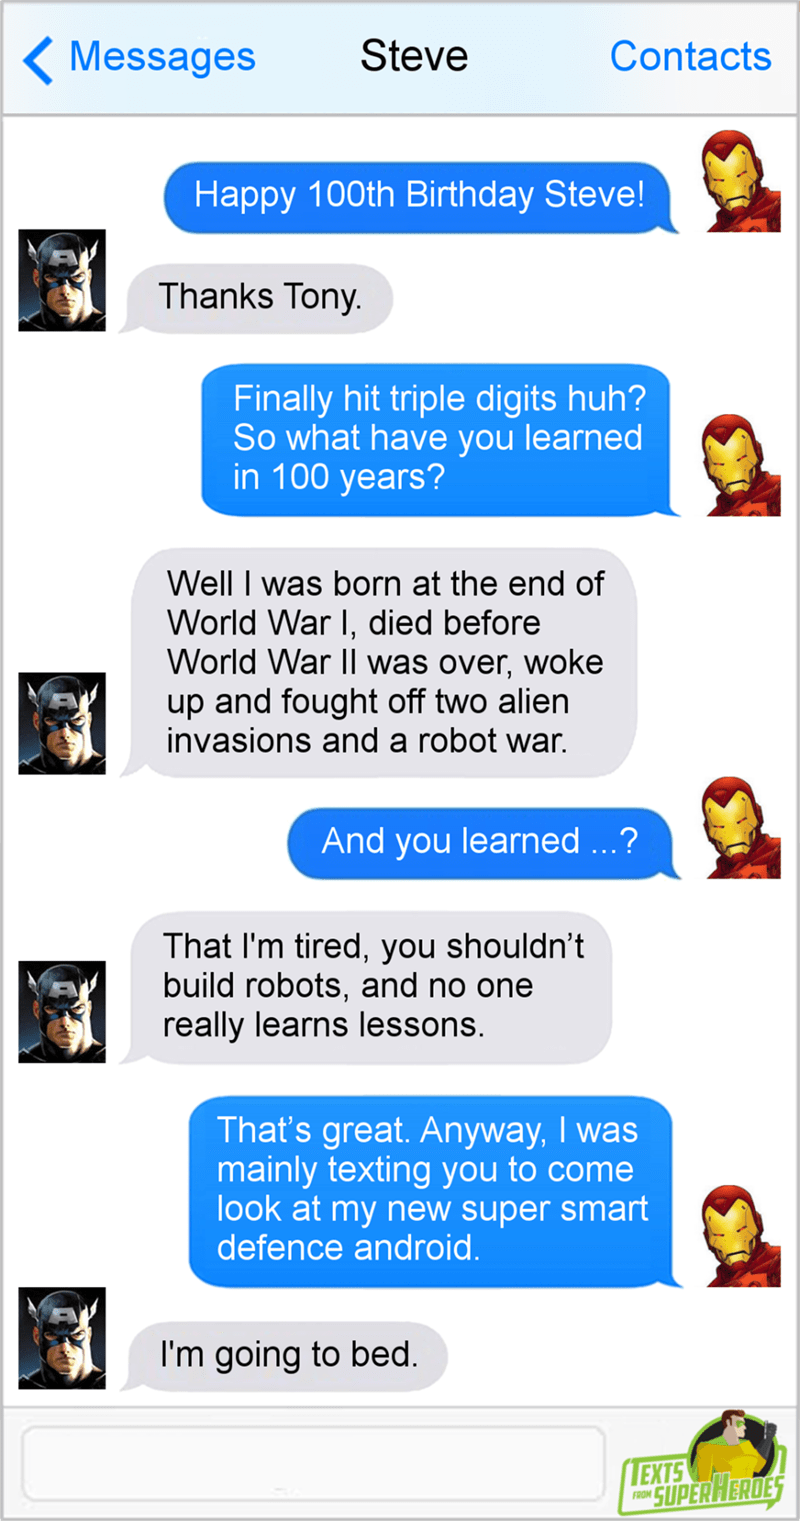 Text conversation between Captain American and Ironman where Ironman wishes him a happy 100th birthday